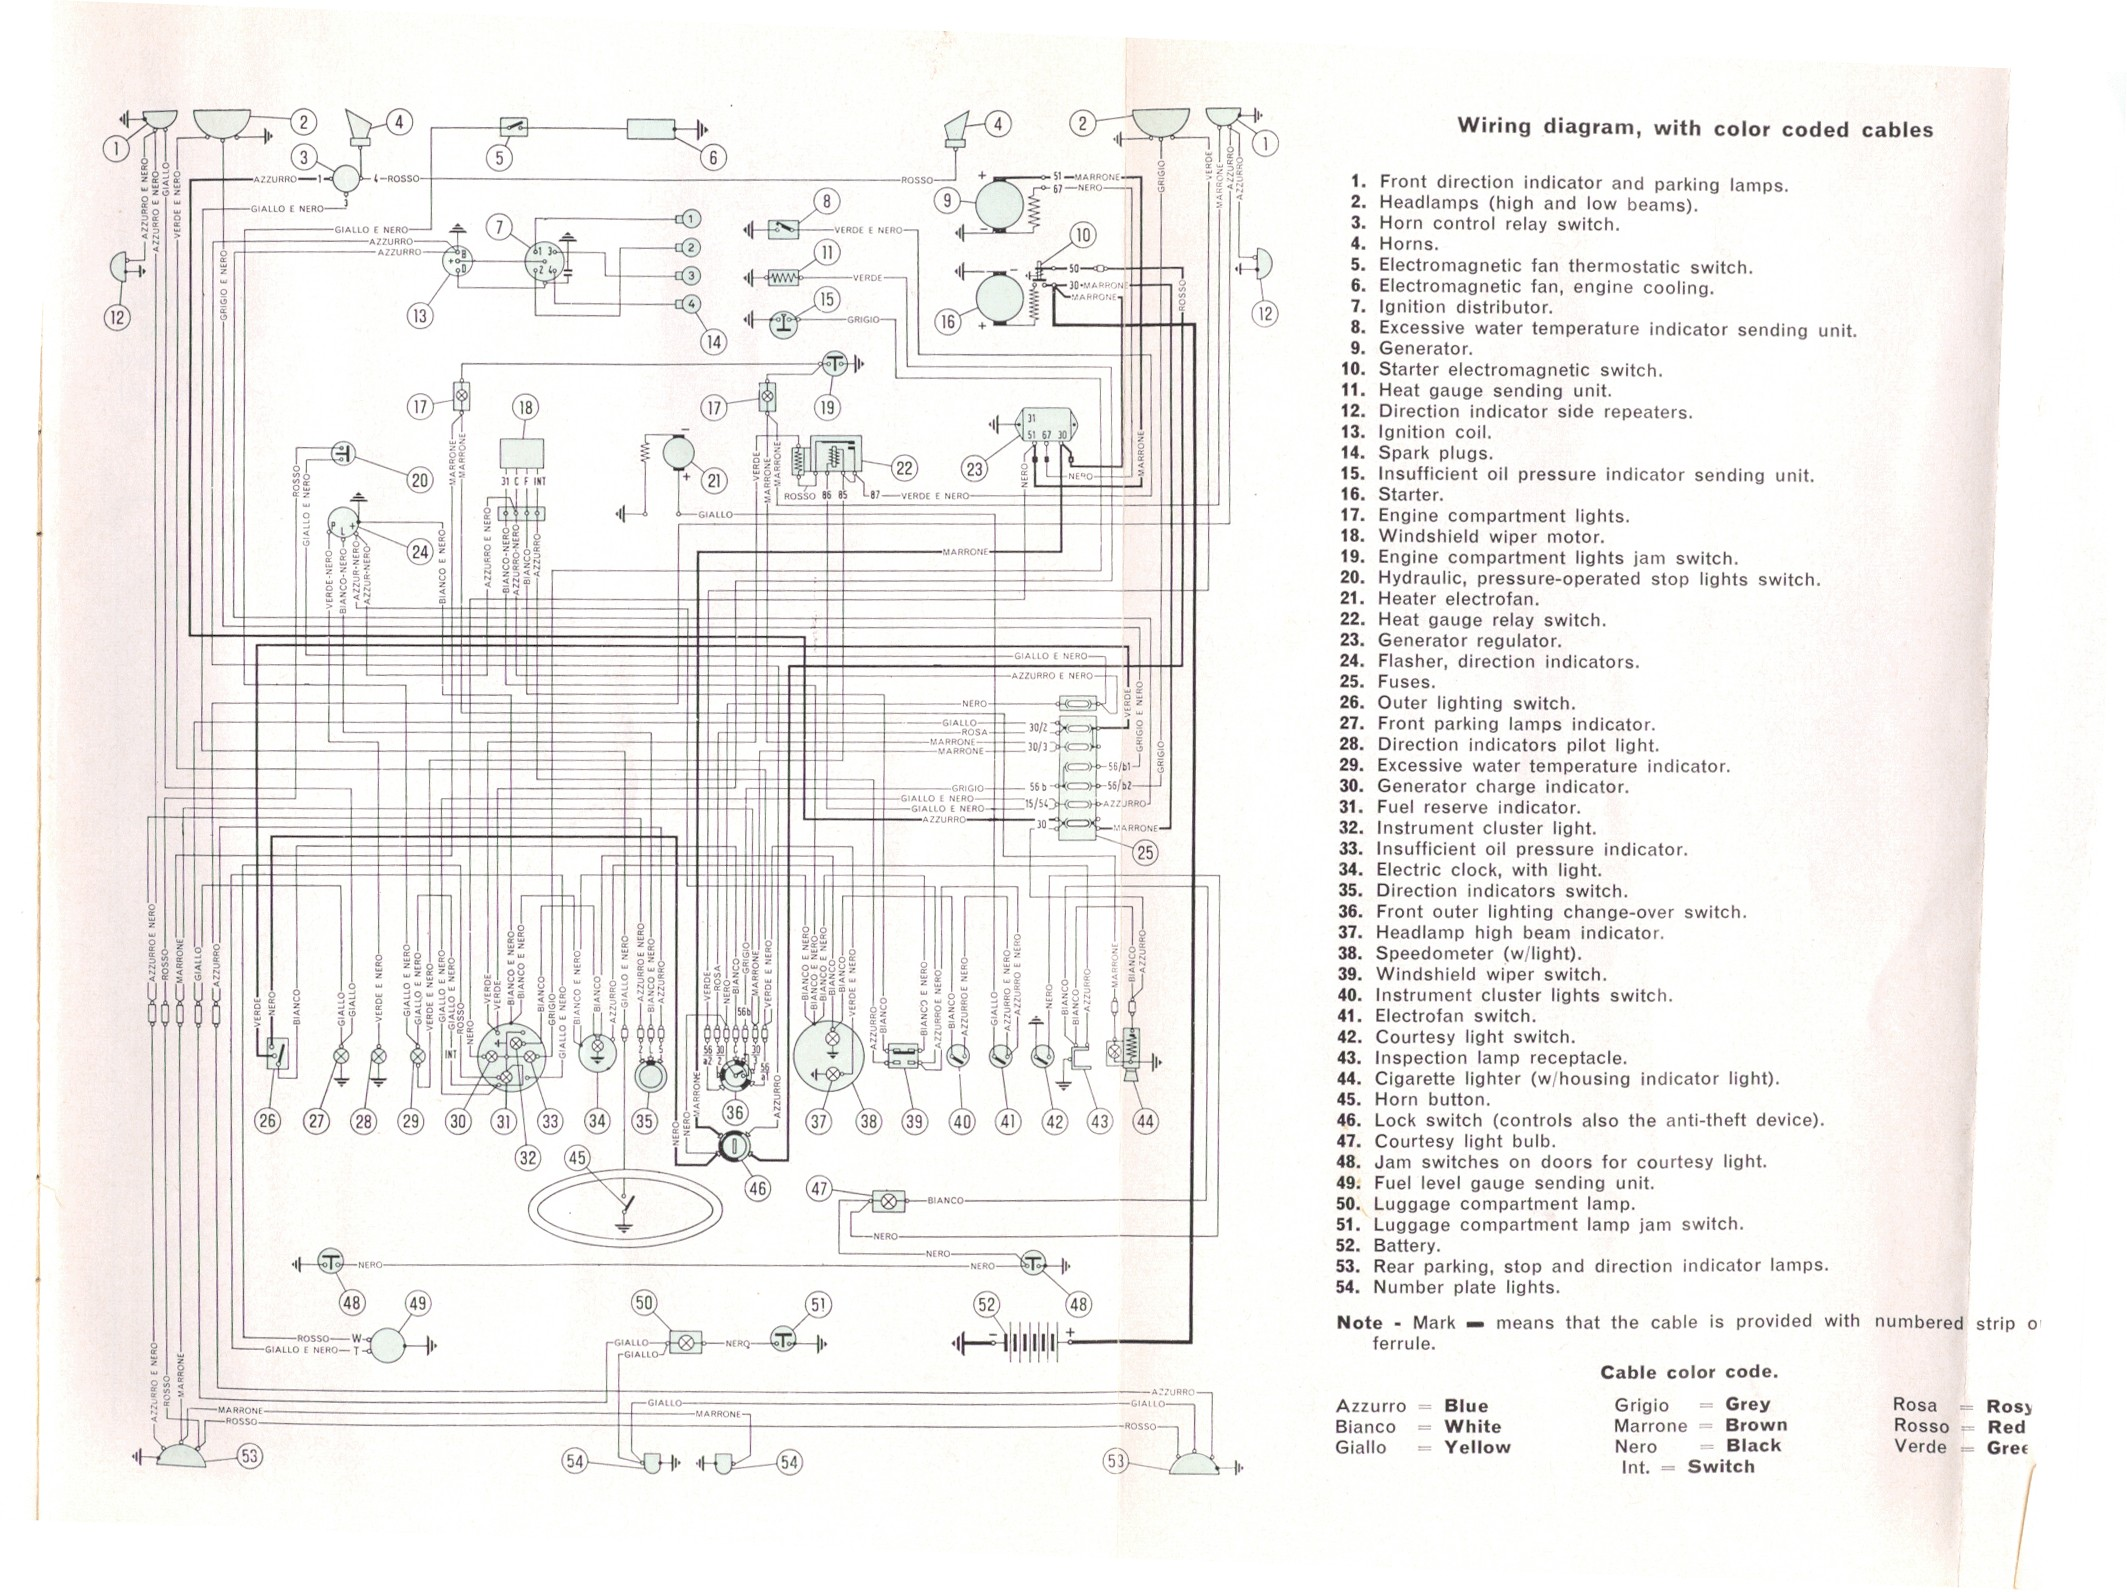 Ge Jkp1 Oven Wiring Diagram | Wiring Liry Range Ge Diagram Jkp Schematic on